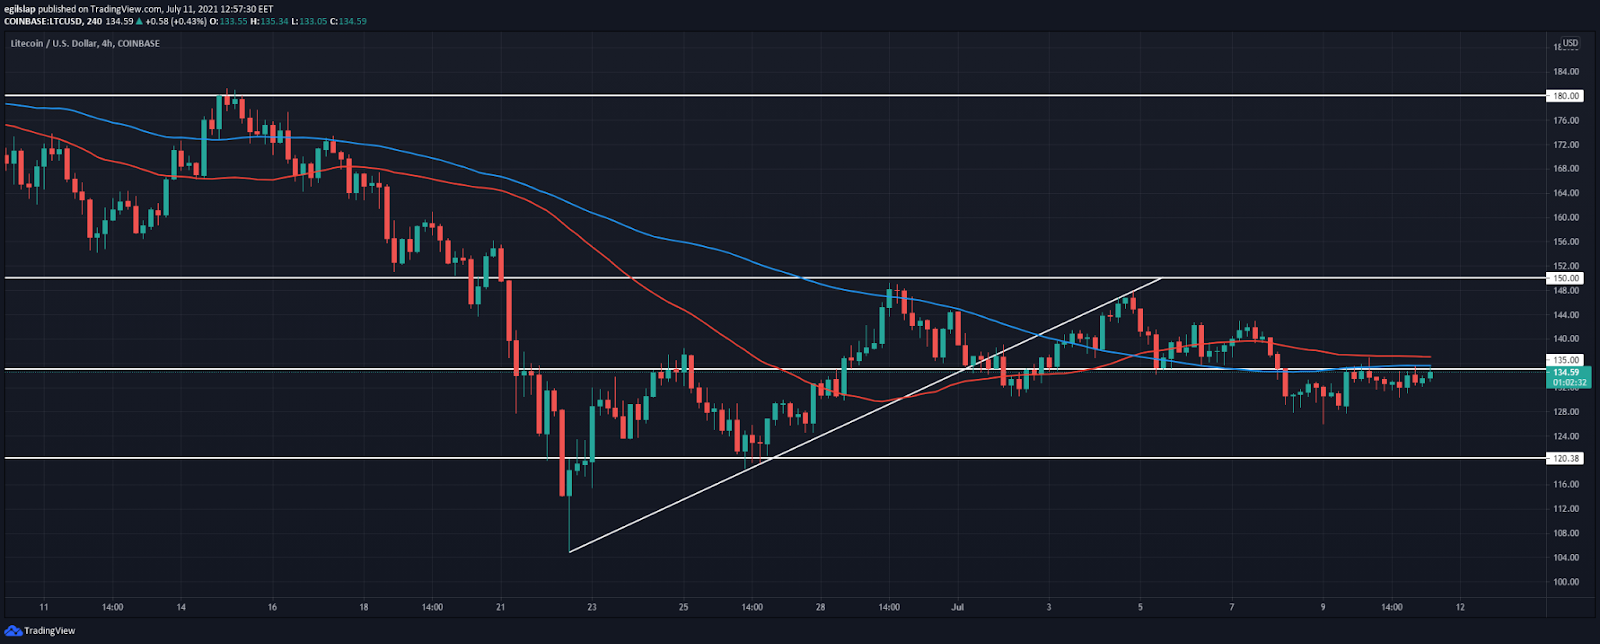 Litecoin price analysis: LTC retests $135 again, prepares for another push lower?